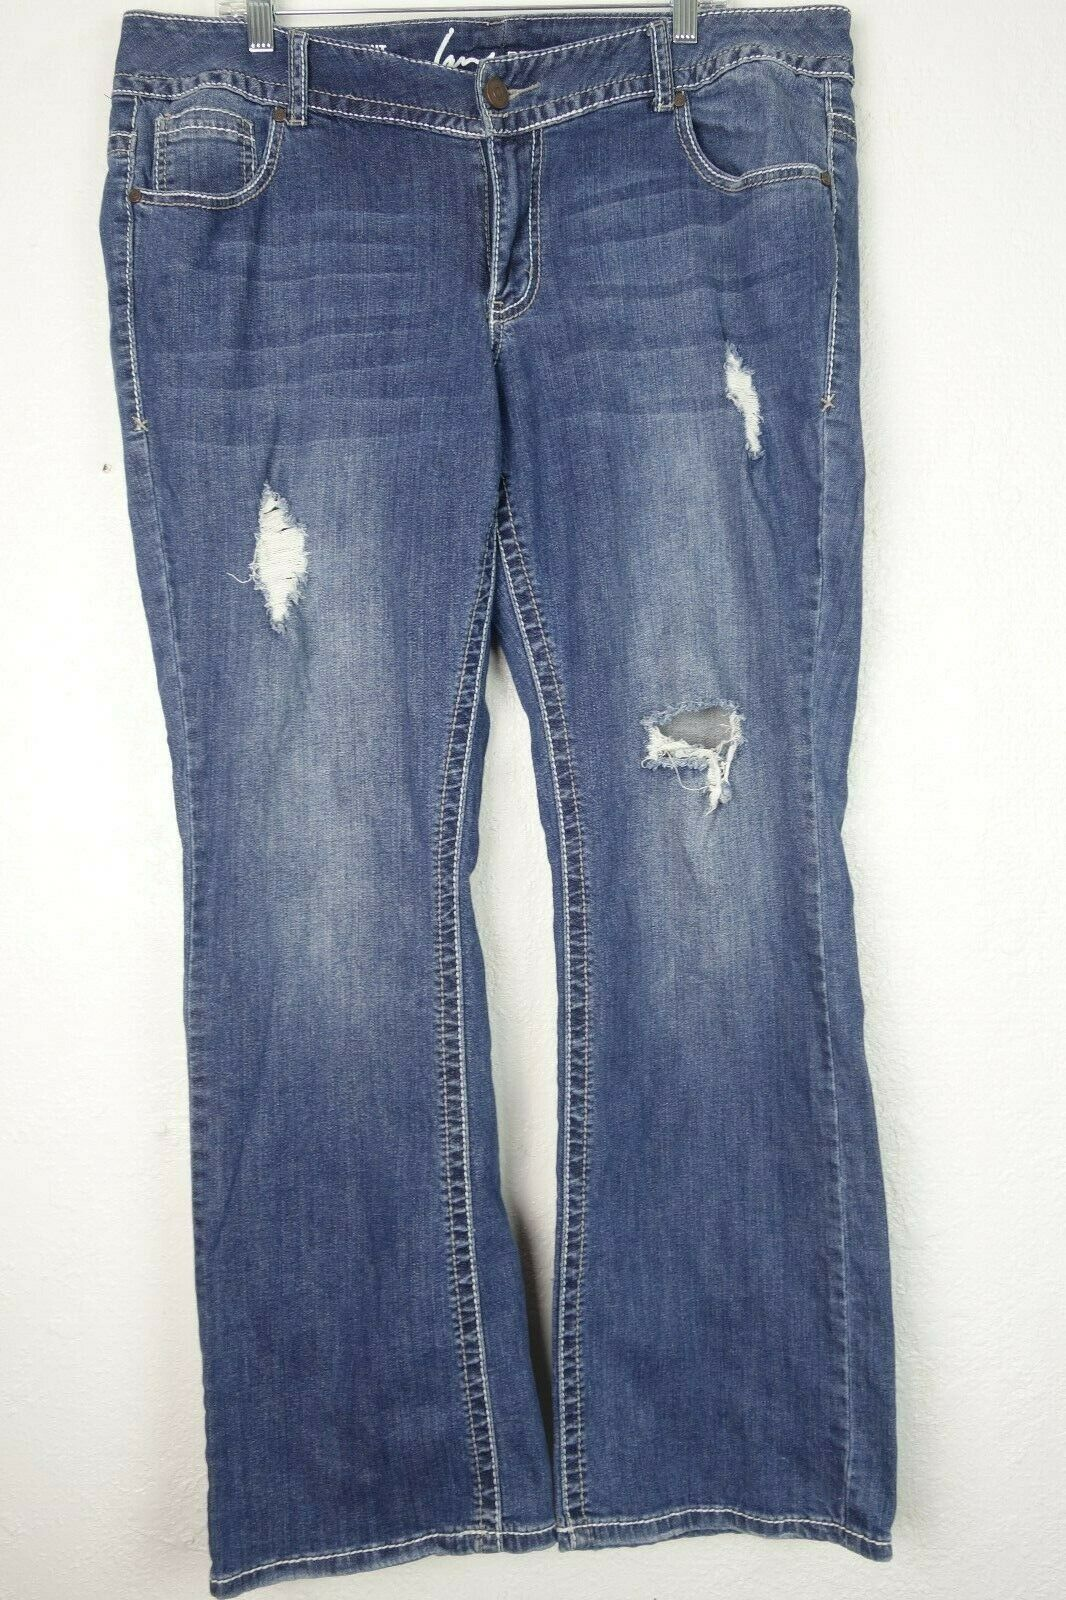 Lane Bryant Jeans bluee Denim DIstressed Holes Boot Cut Women's Plus Size 18